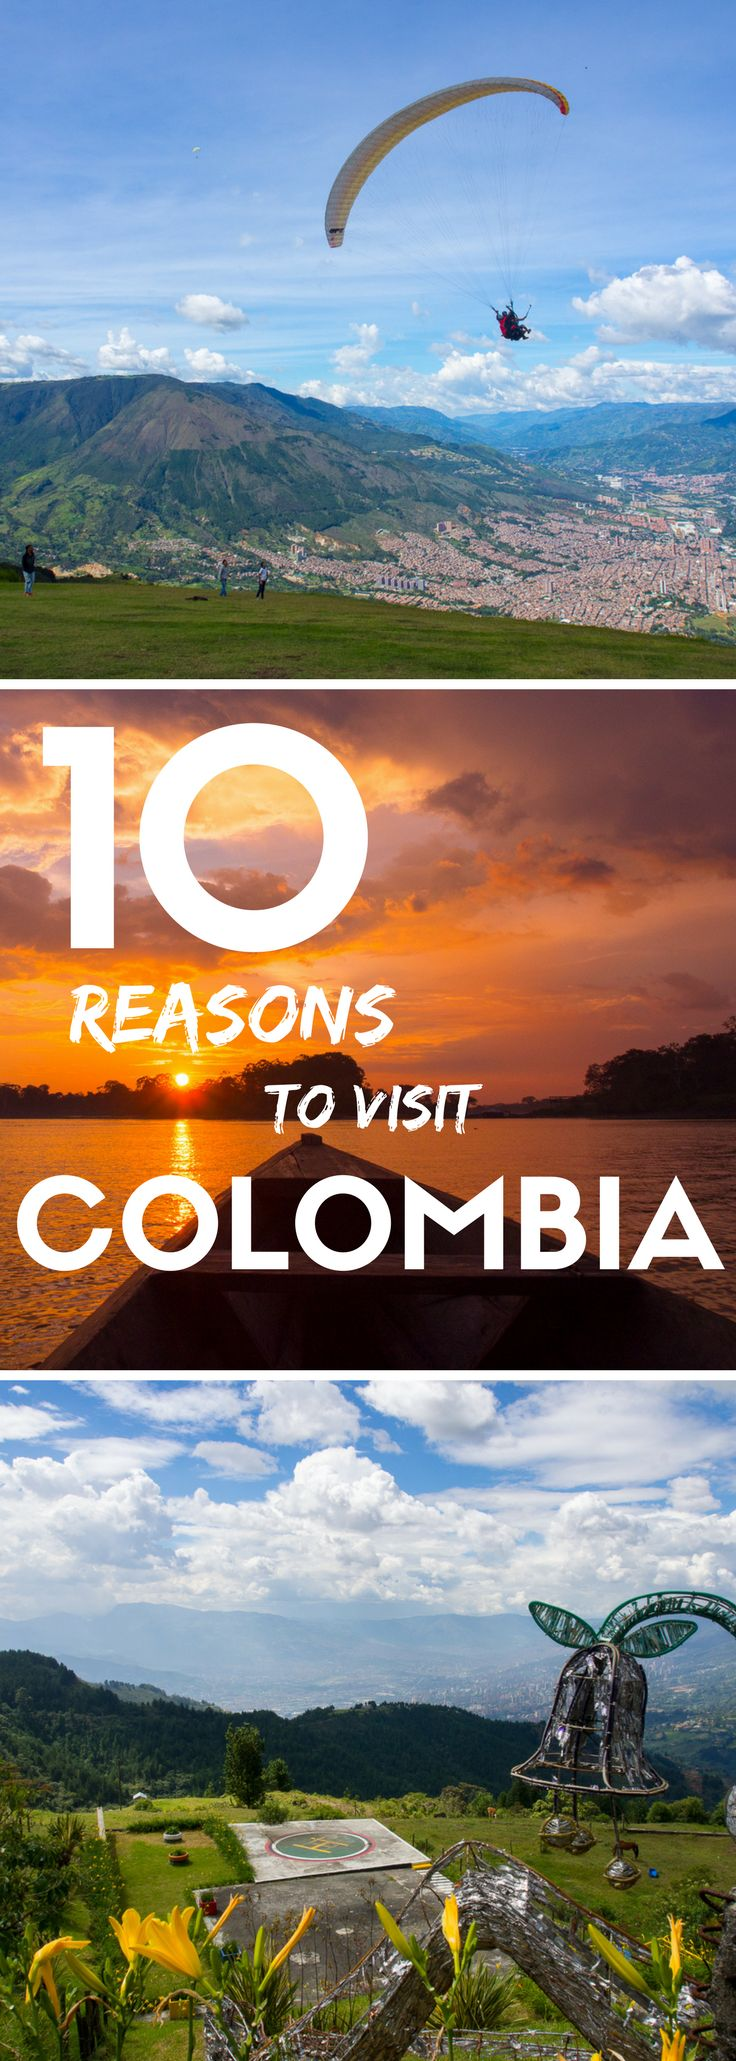 Colombia is rising to the radar fast: the Caribbean beaches, mountain treks, and Amazon adventures are some of the best in South America.